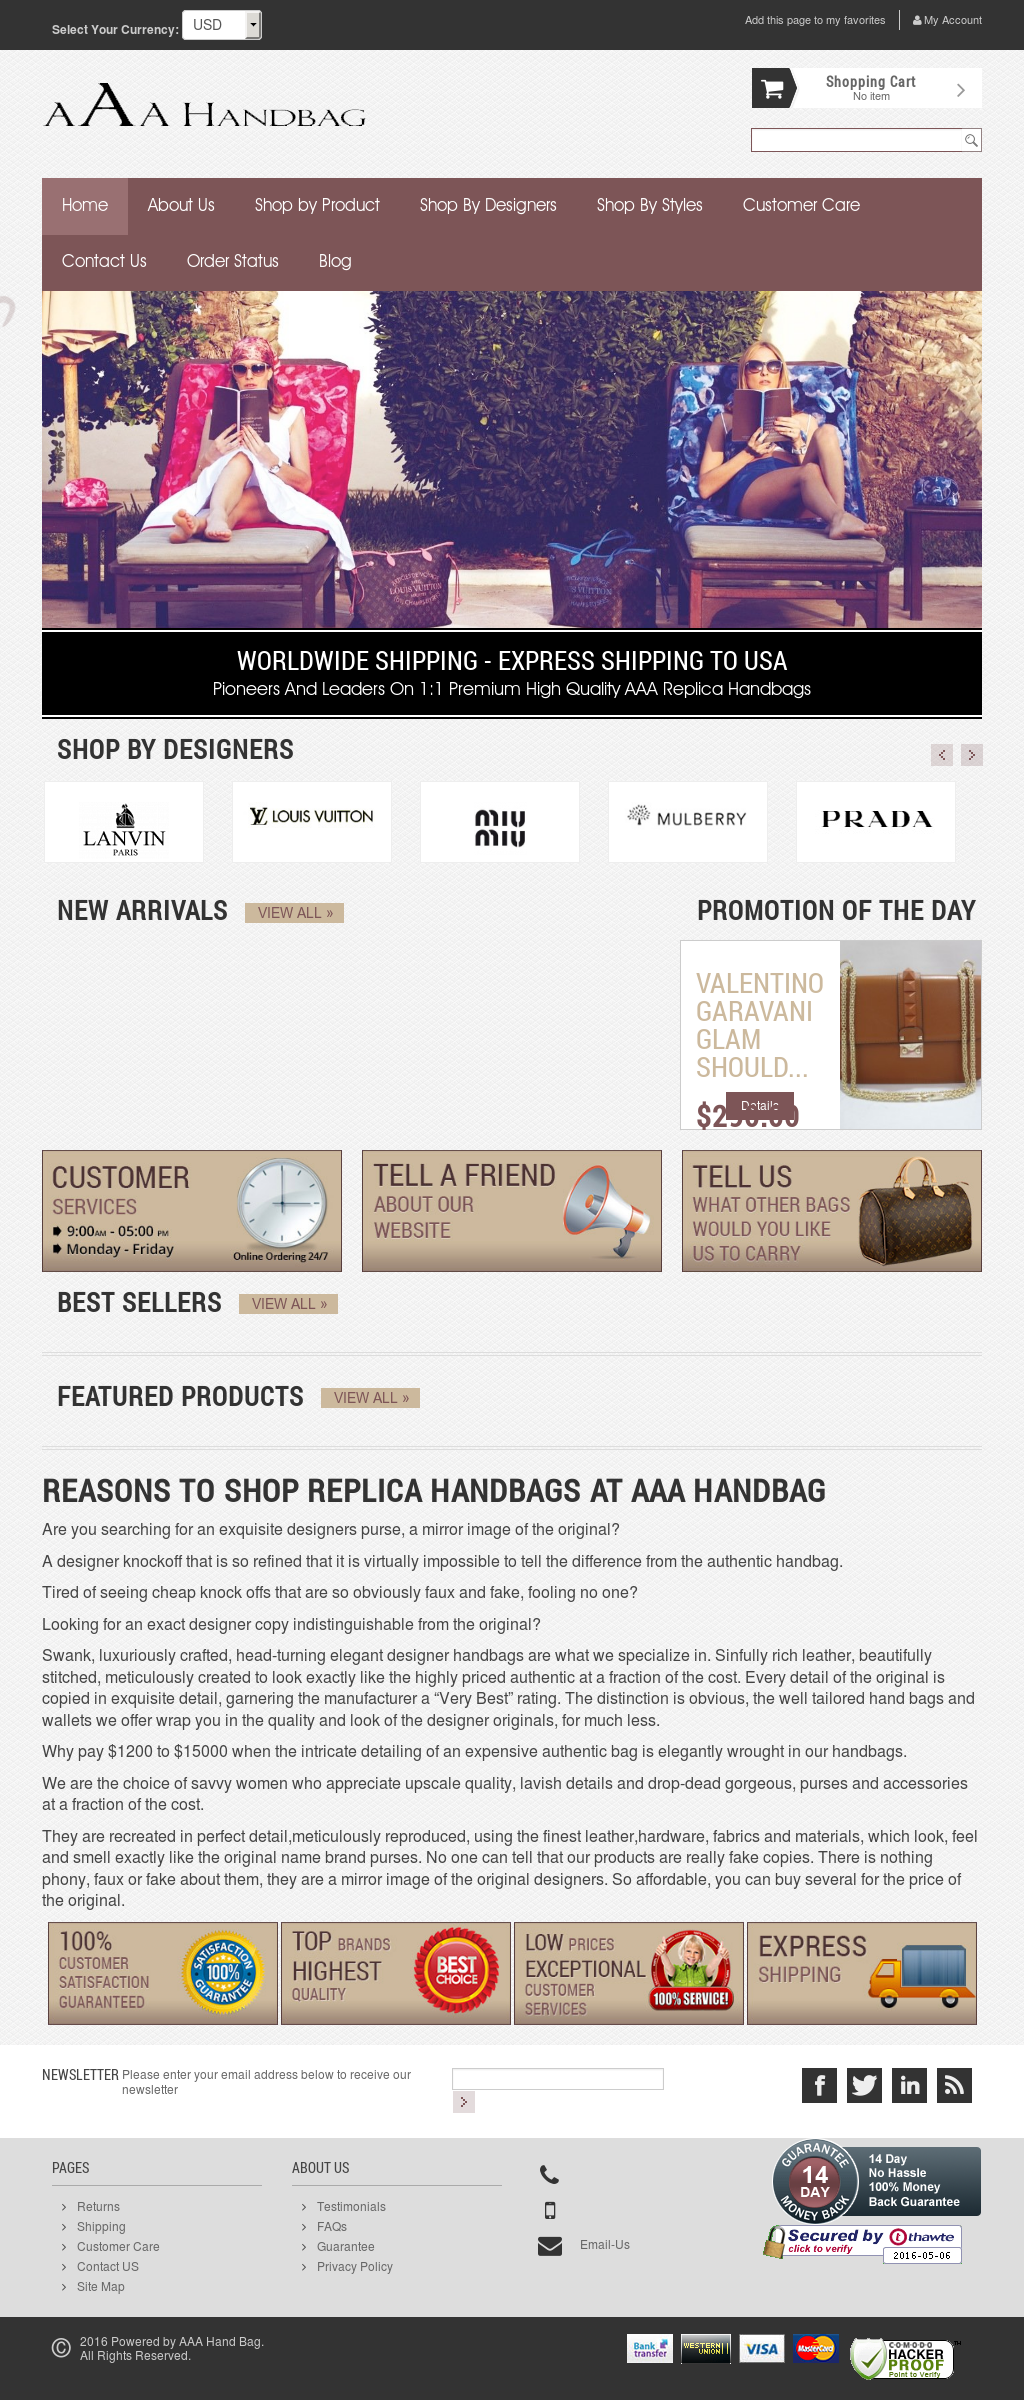 AAA Hand Bag petitors Revenue and Employees Owler pany Profile